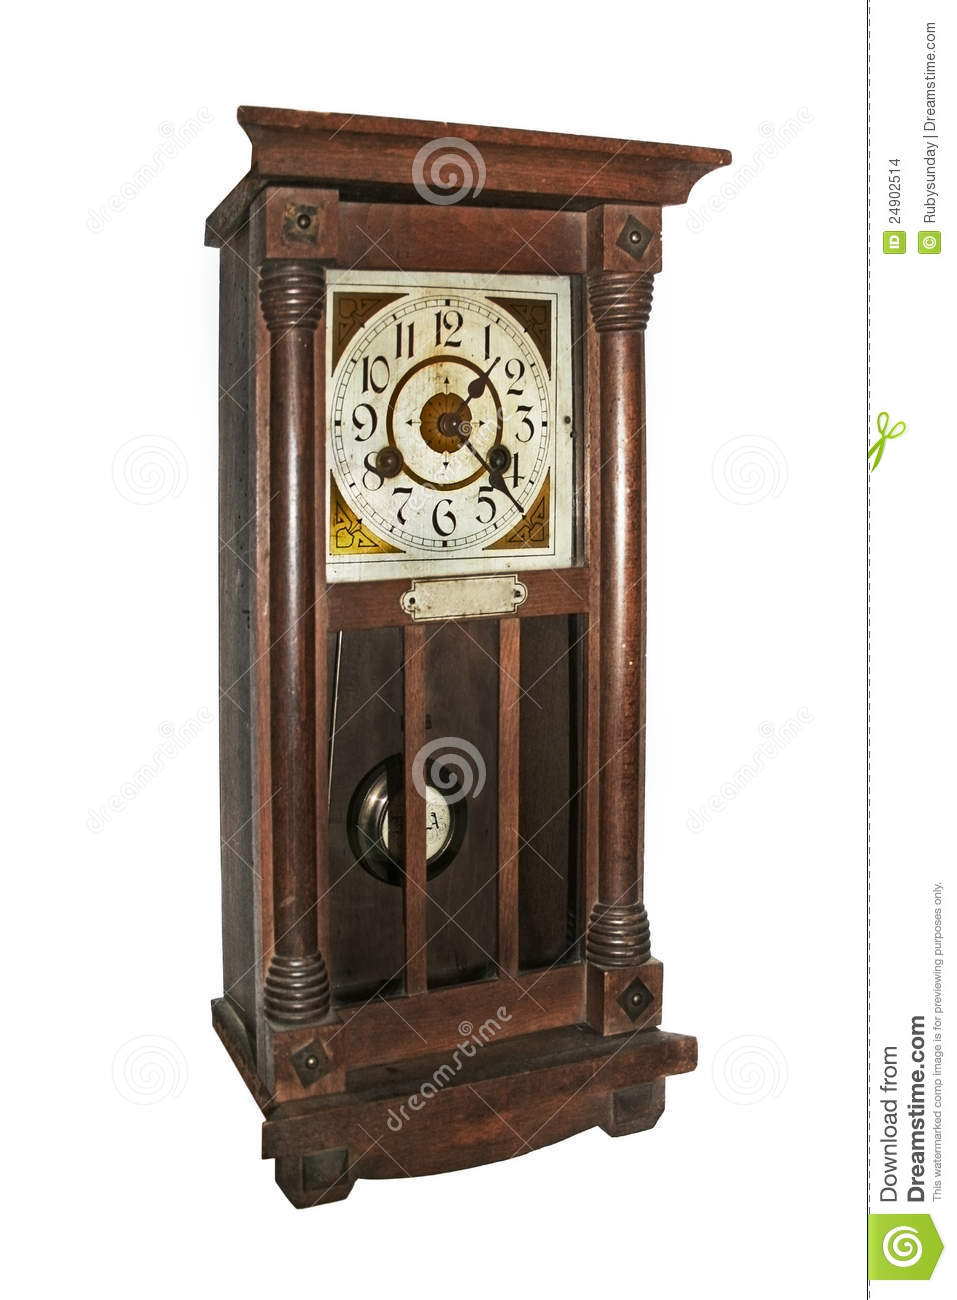 Antique Wall Clock Stock Images - Image: 24902514